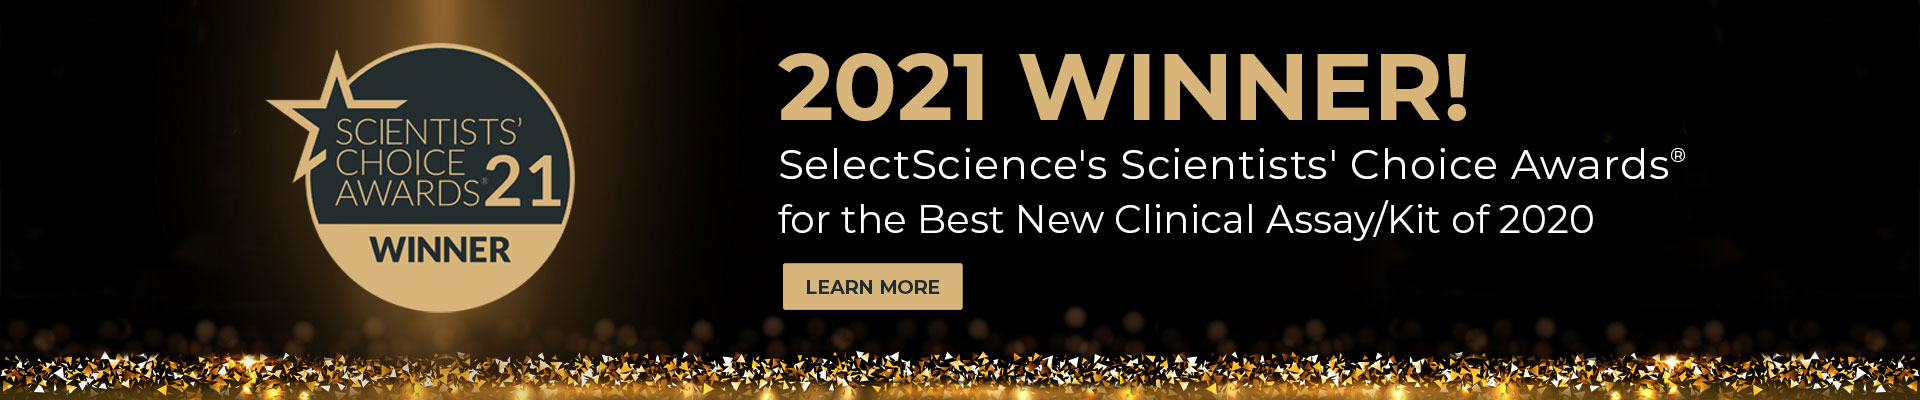 banner showing the Quick-DNA/RNA Viral Magbead Kit and its 2021 scientsts' choice award for best new clinical assay/kit